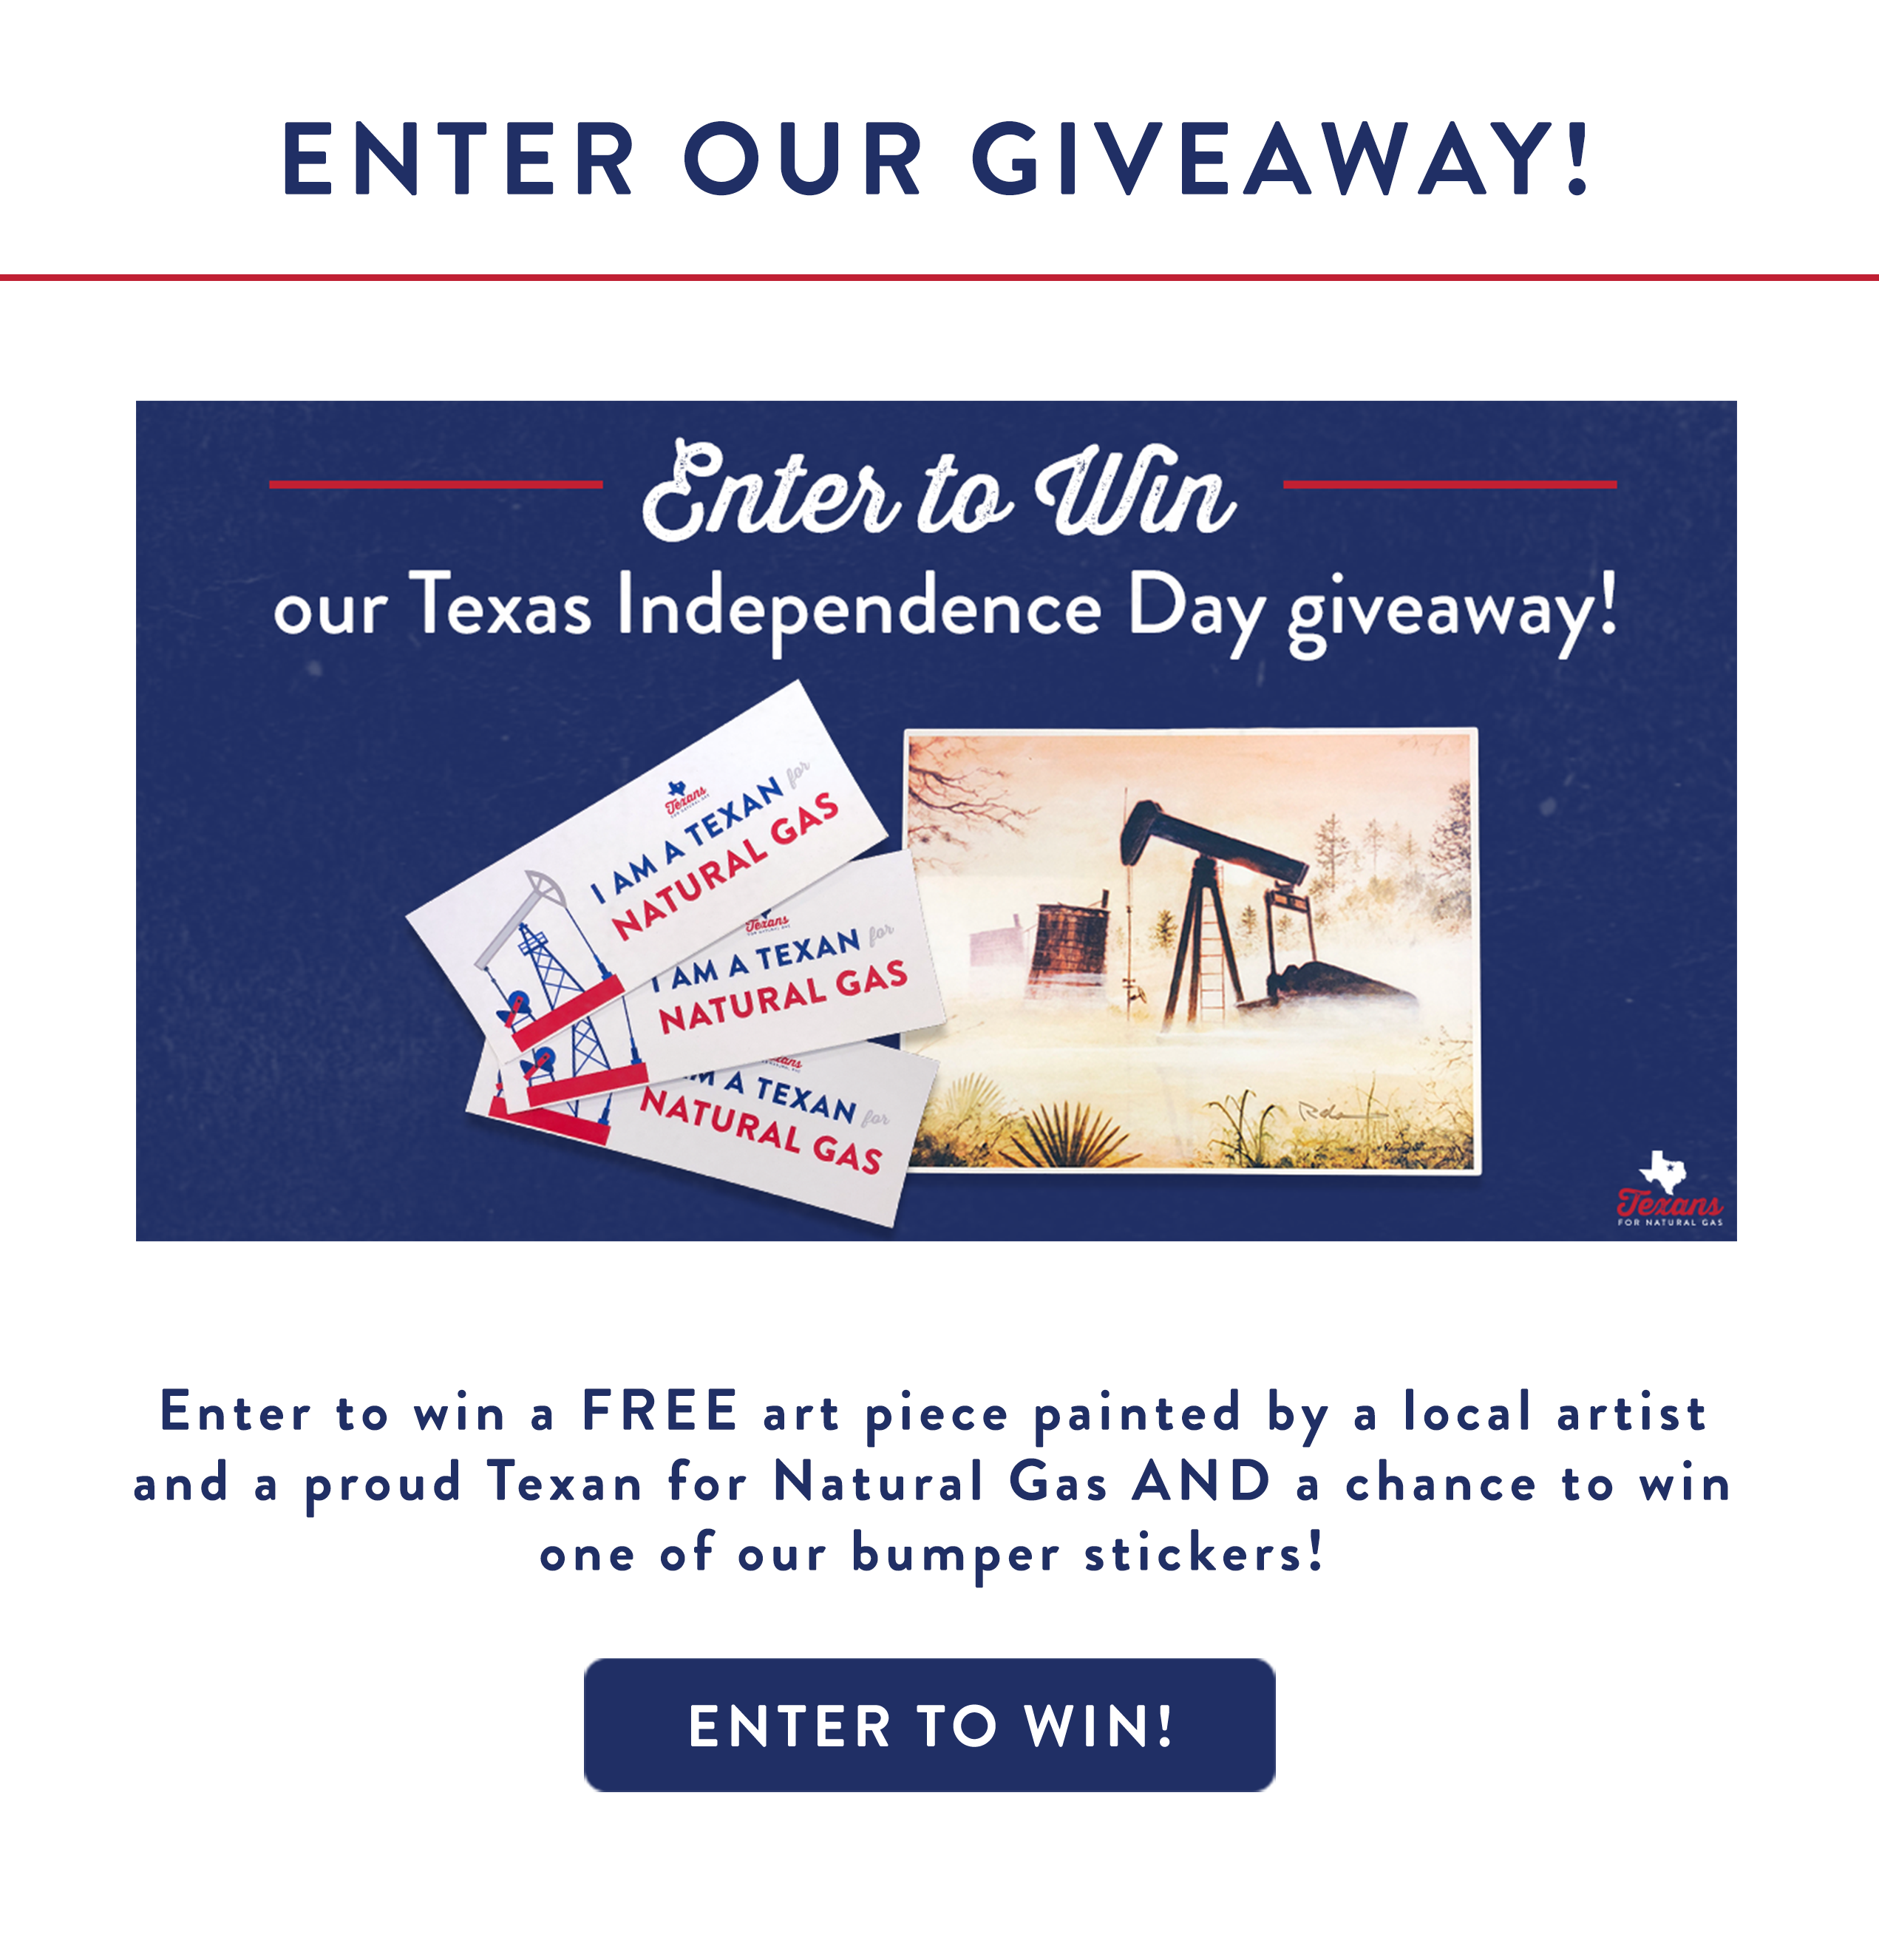 Texas Independence Day Giveaway